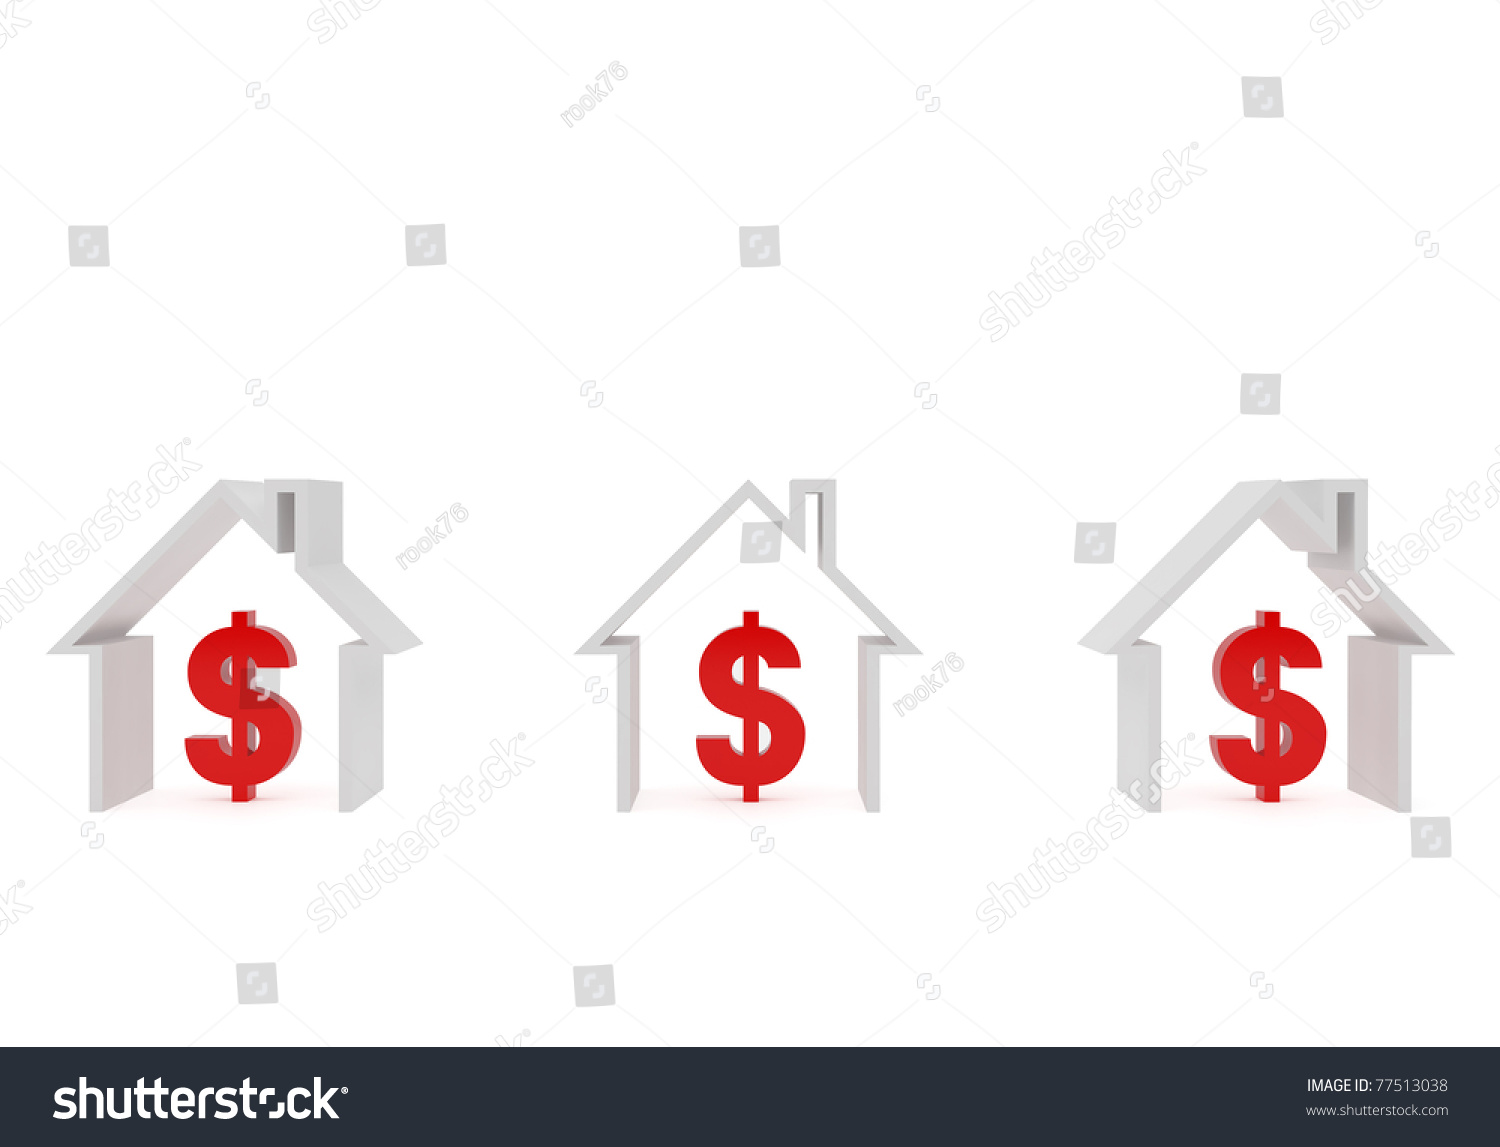 High Resolution Image 3d Rendered Illustration Three Houses And